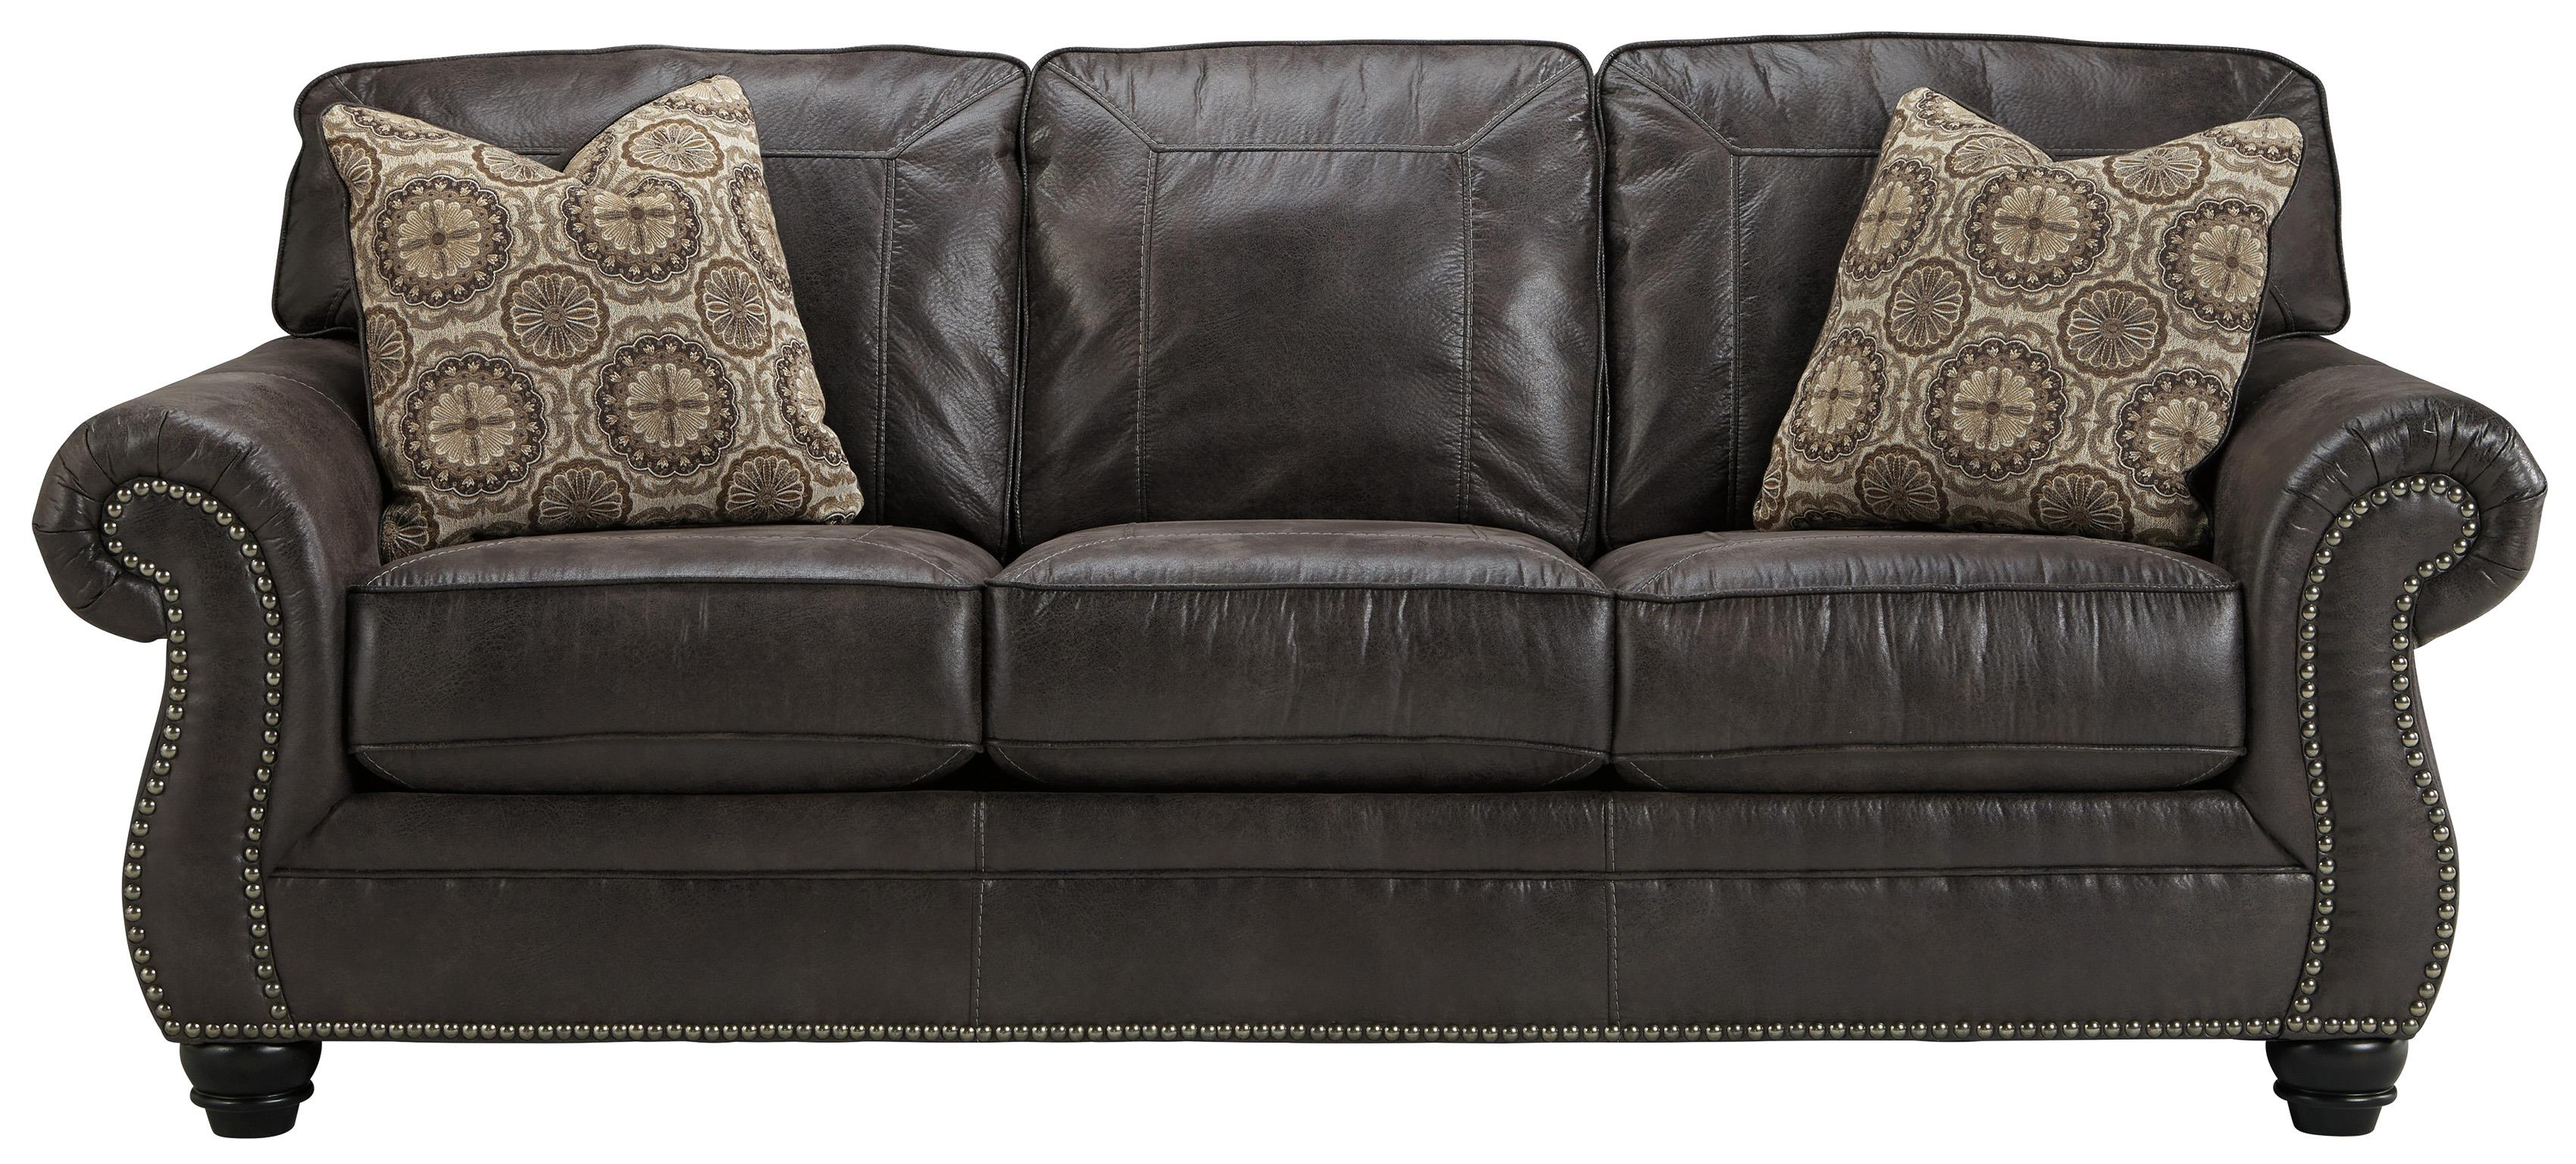 Faux Leather Queen Sofa Sleeper With Rolled Arms And Nailhead Trim  ~ Queen Sofa Sleeper Leather